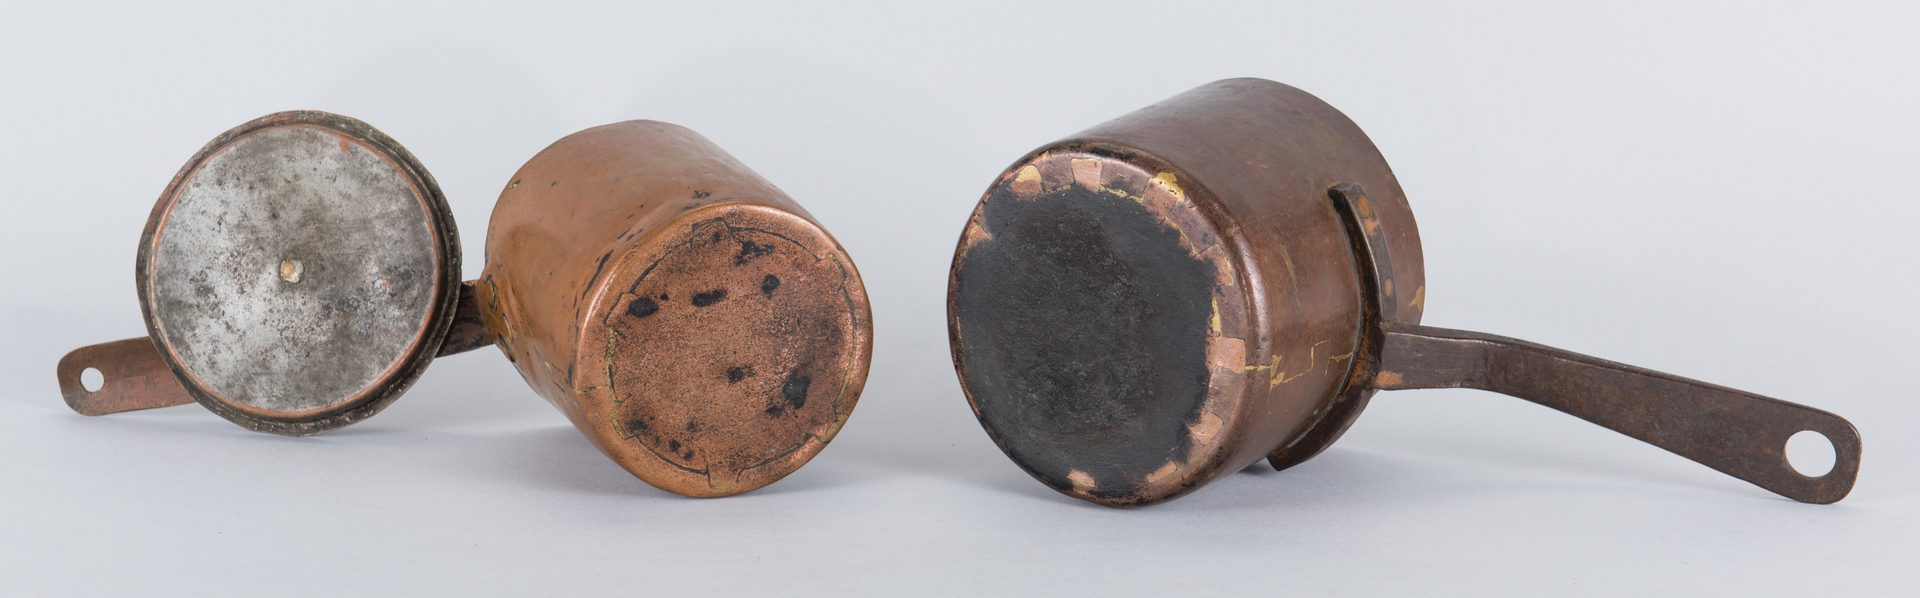 Lot 141: 2 19th Cent. Copper Pots, 1 signed